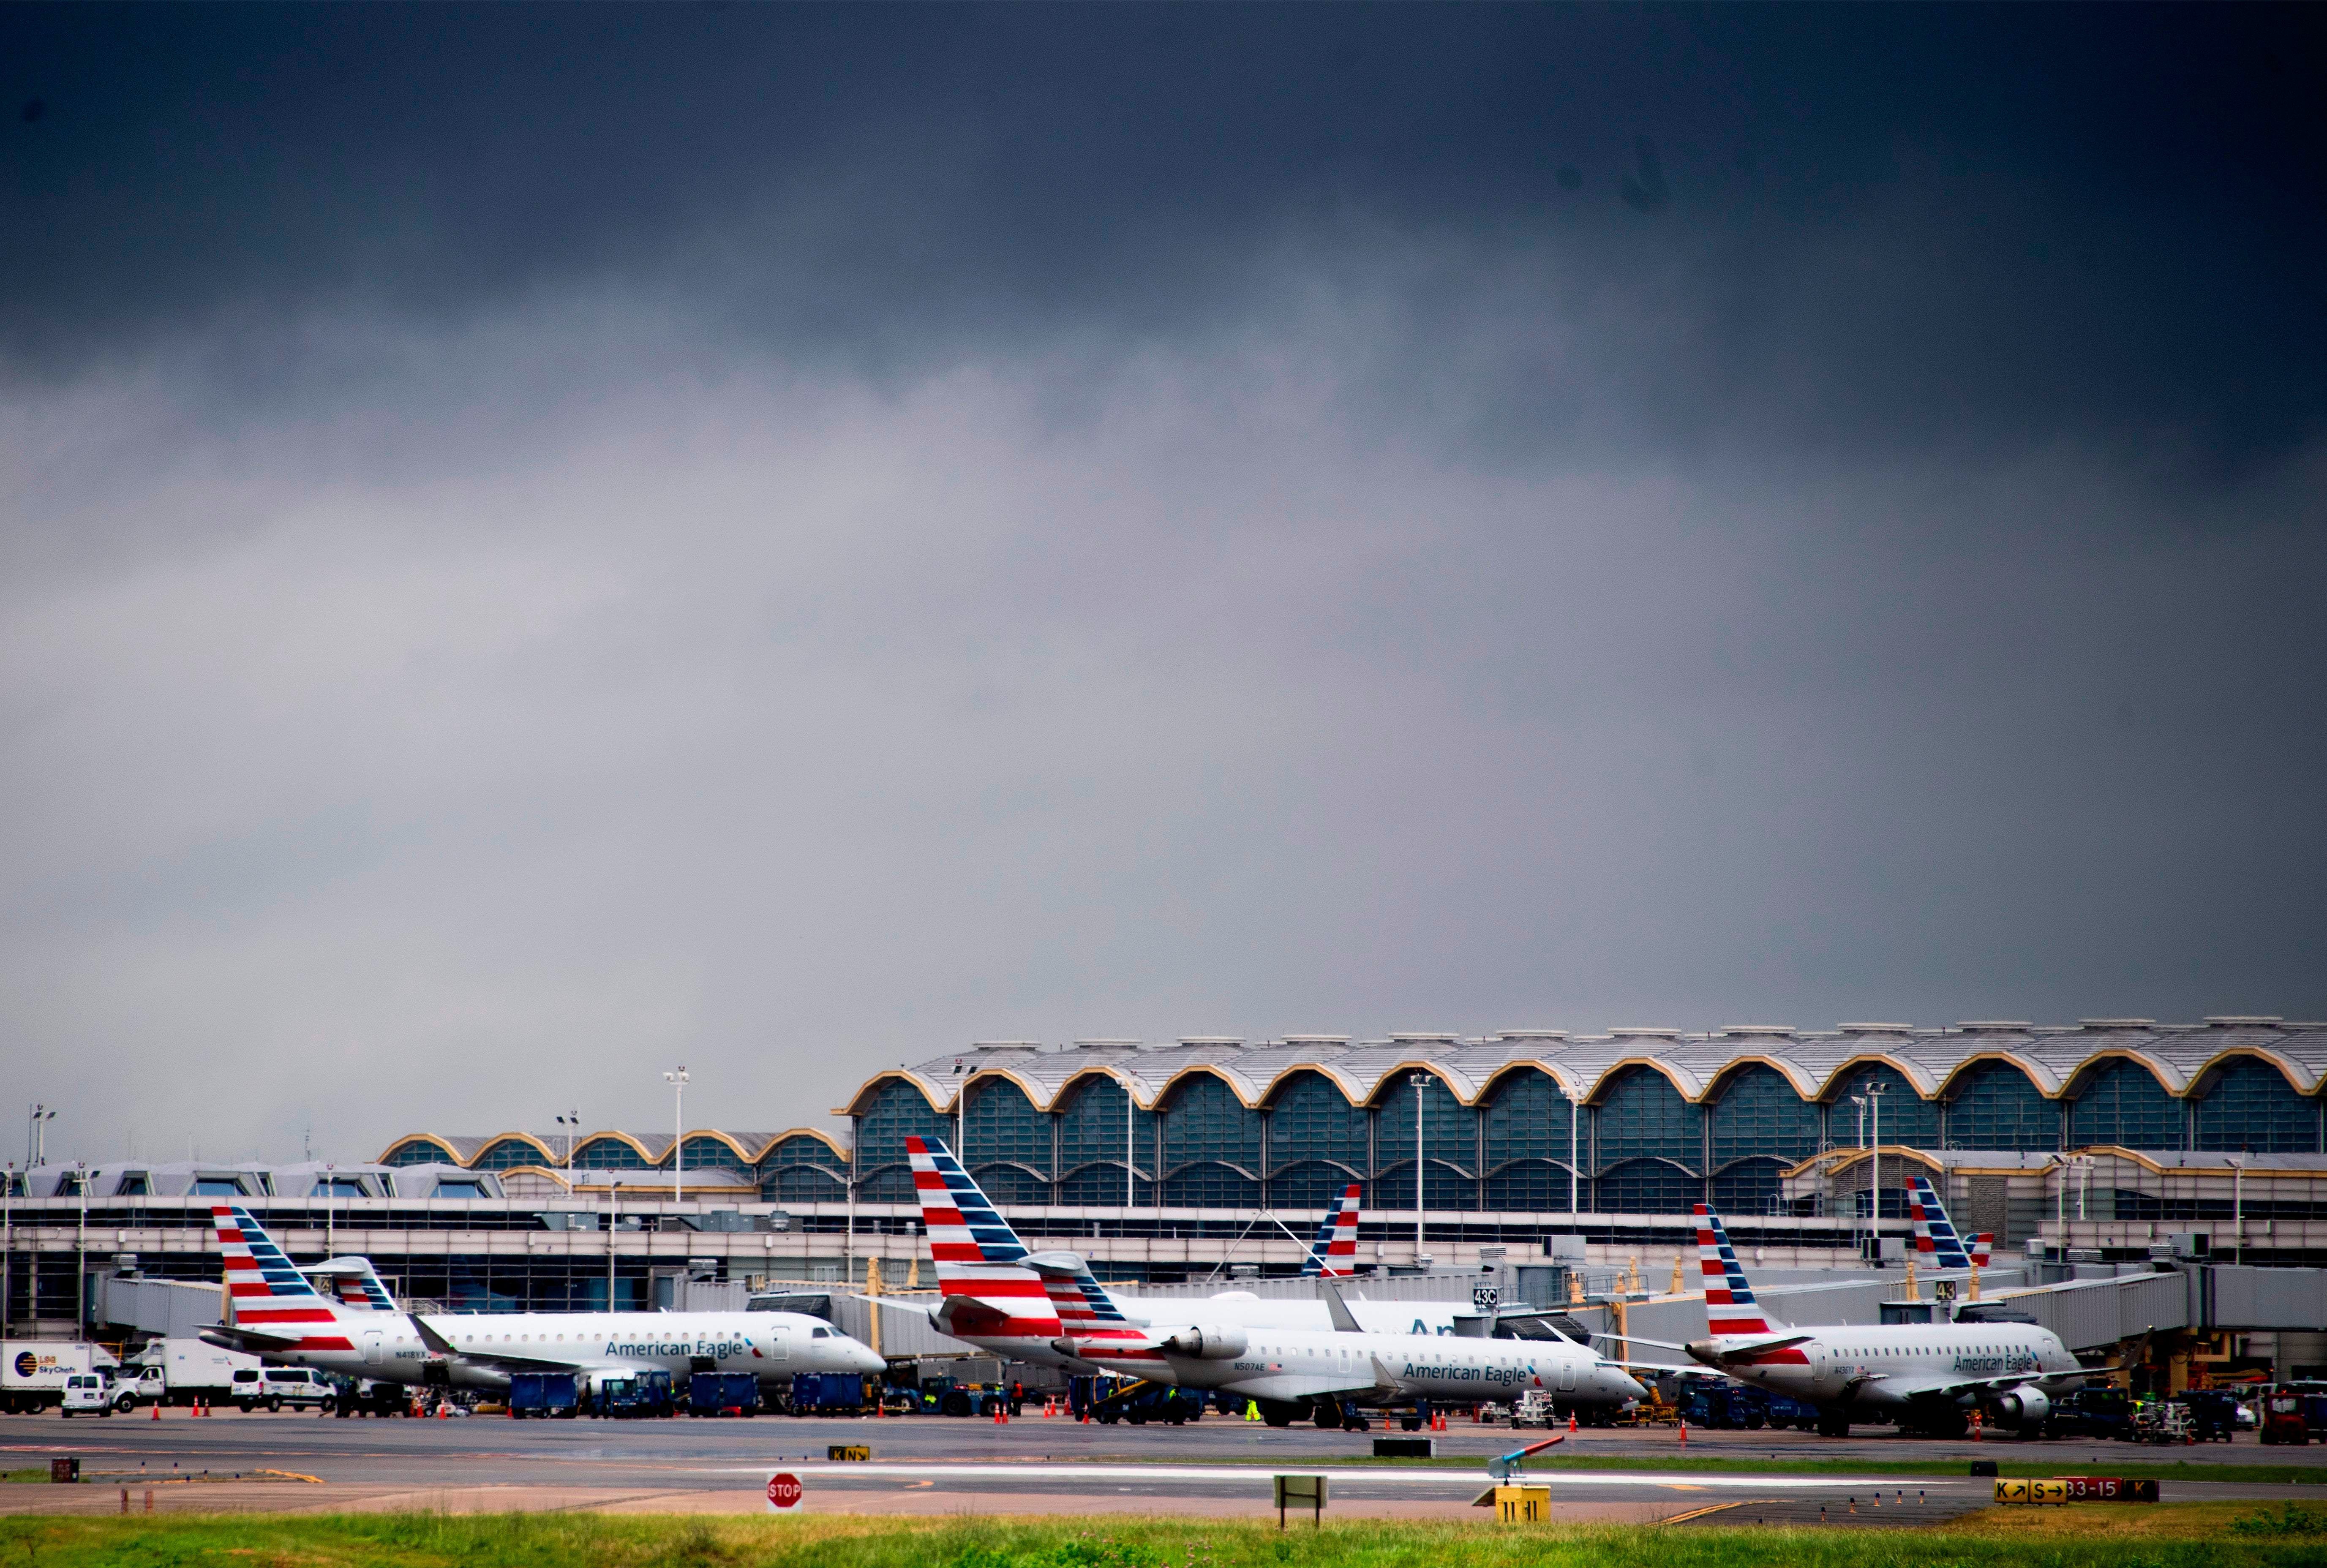 Flights due to begin from new Washington National concourse next year